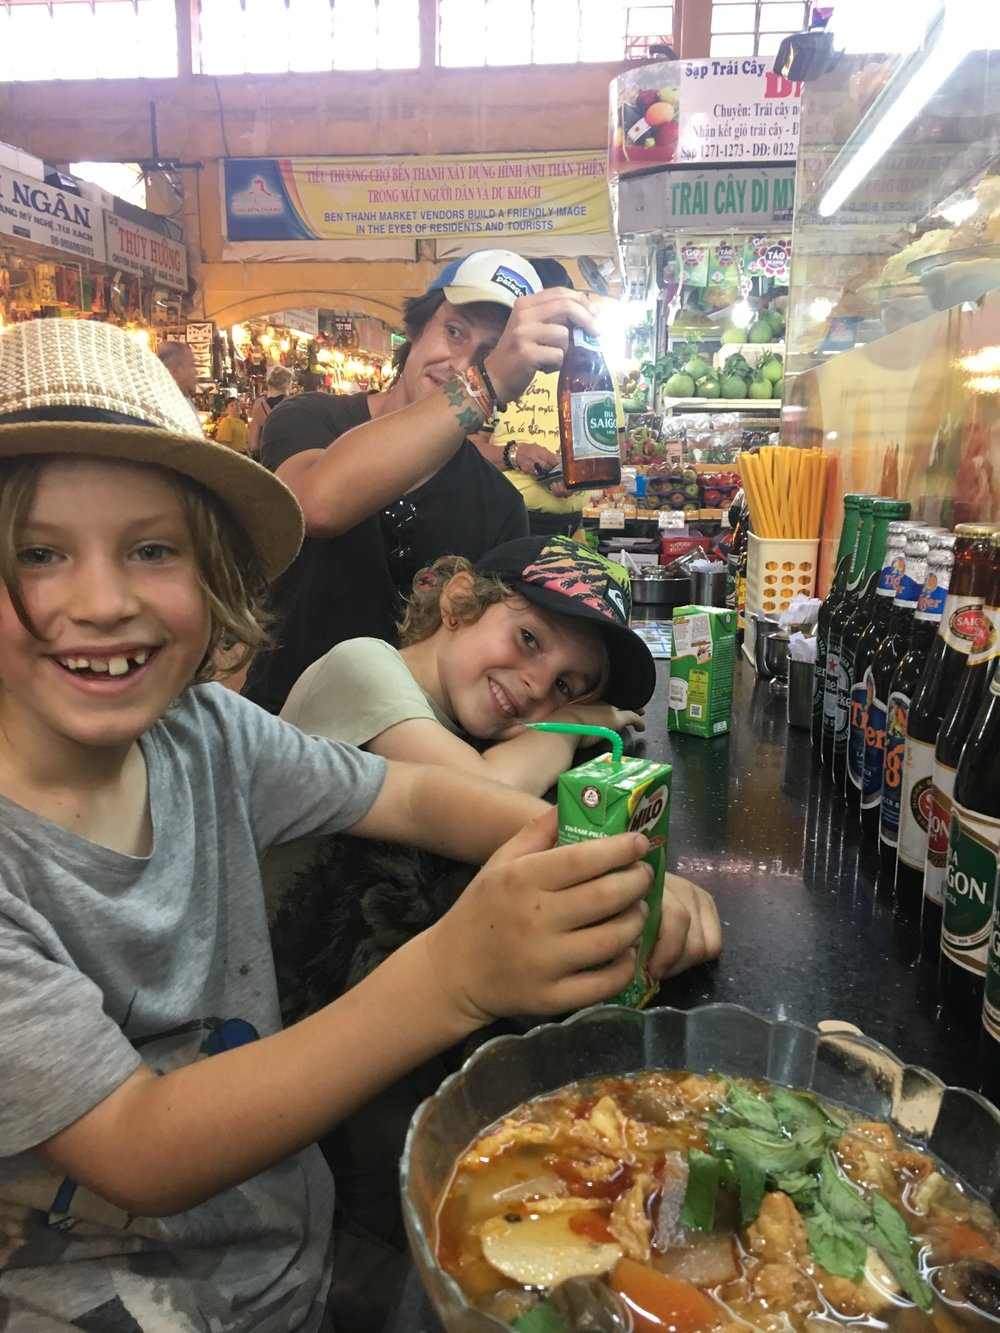 Having a Pho at the Ben Thanh Market. Hectic but fun!